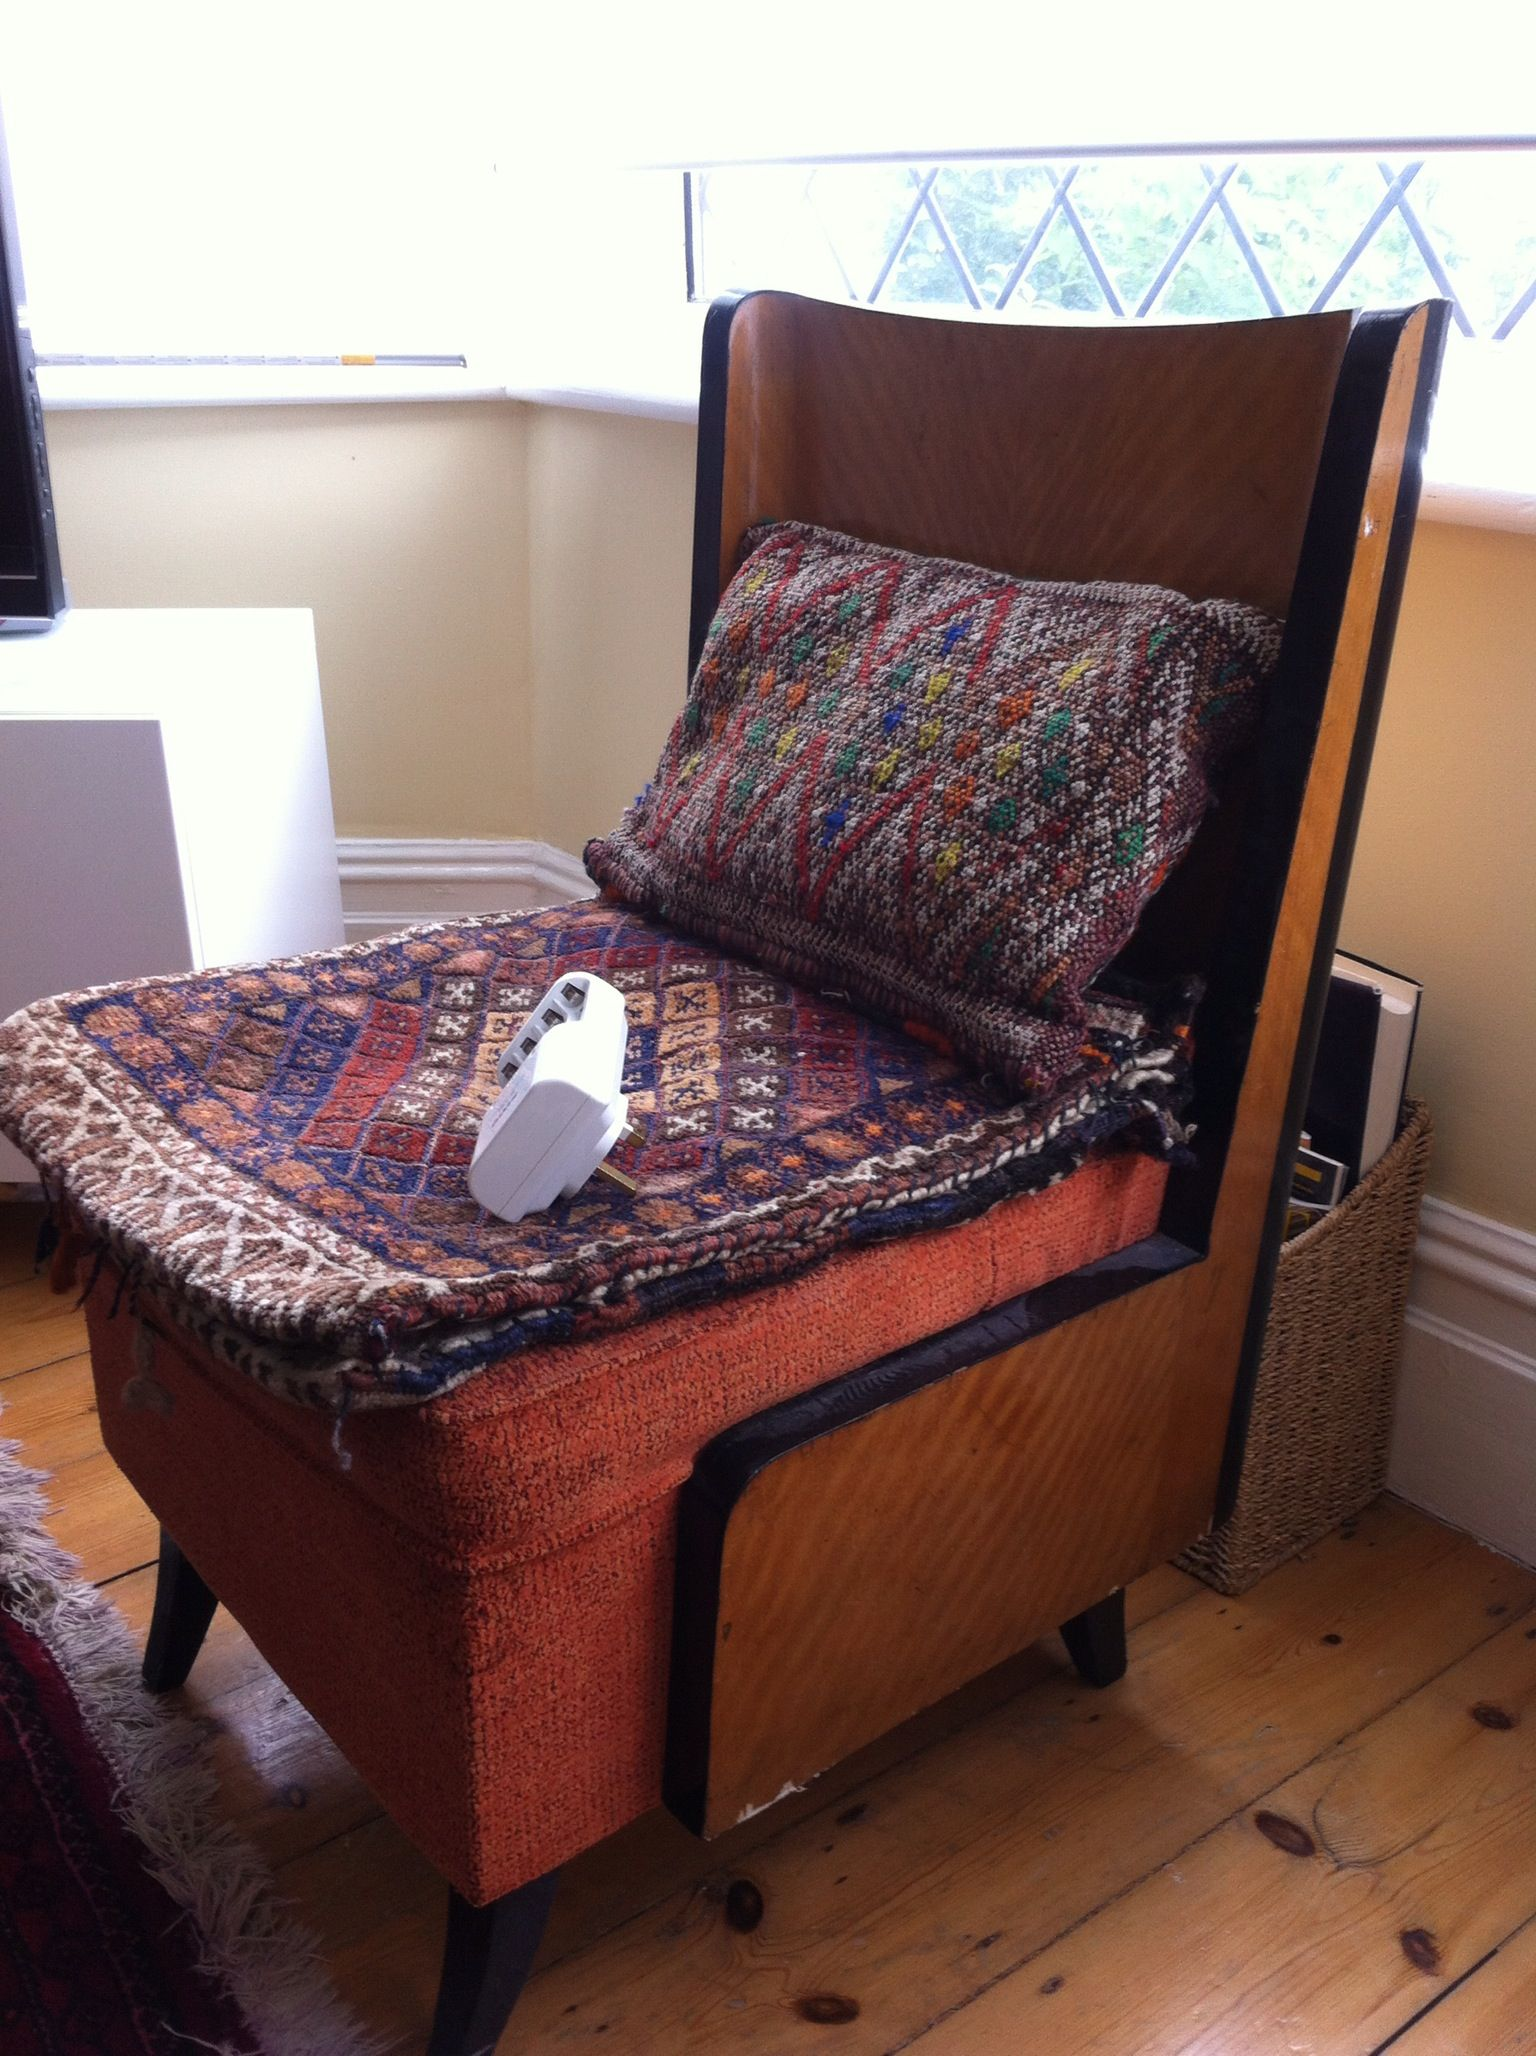 An art deco chair with cushions from morroco deco chairs